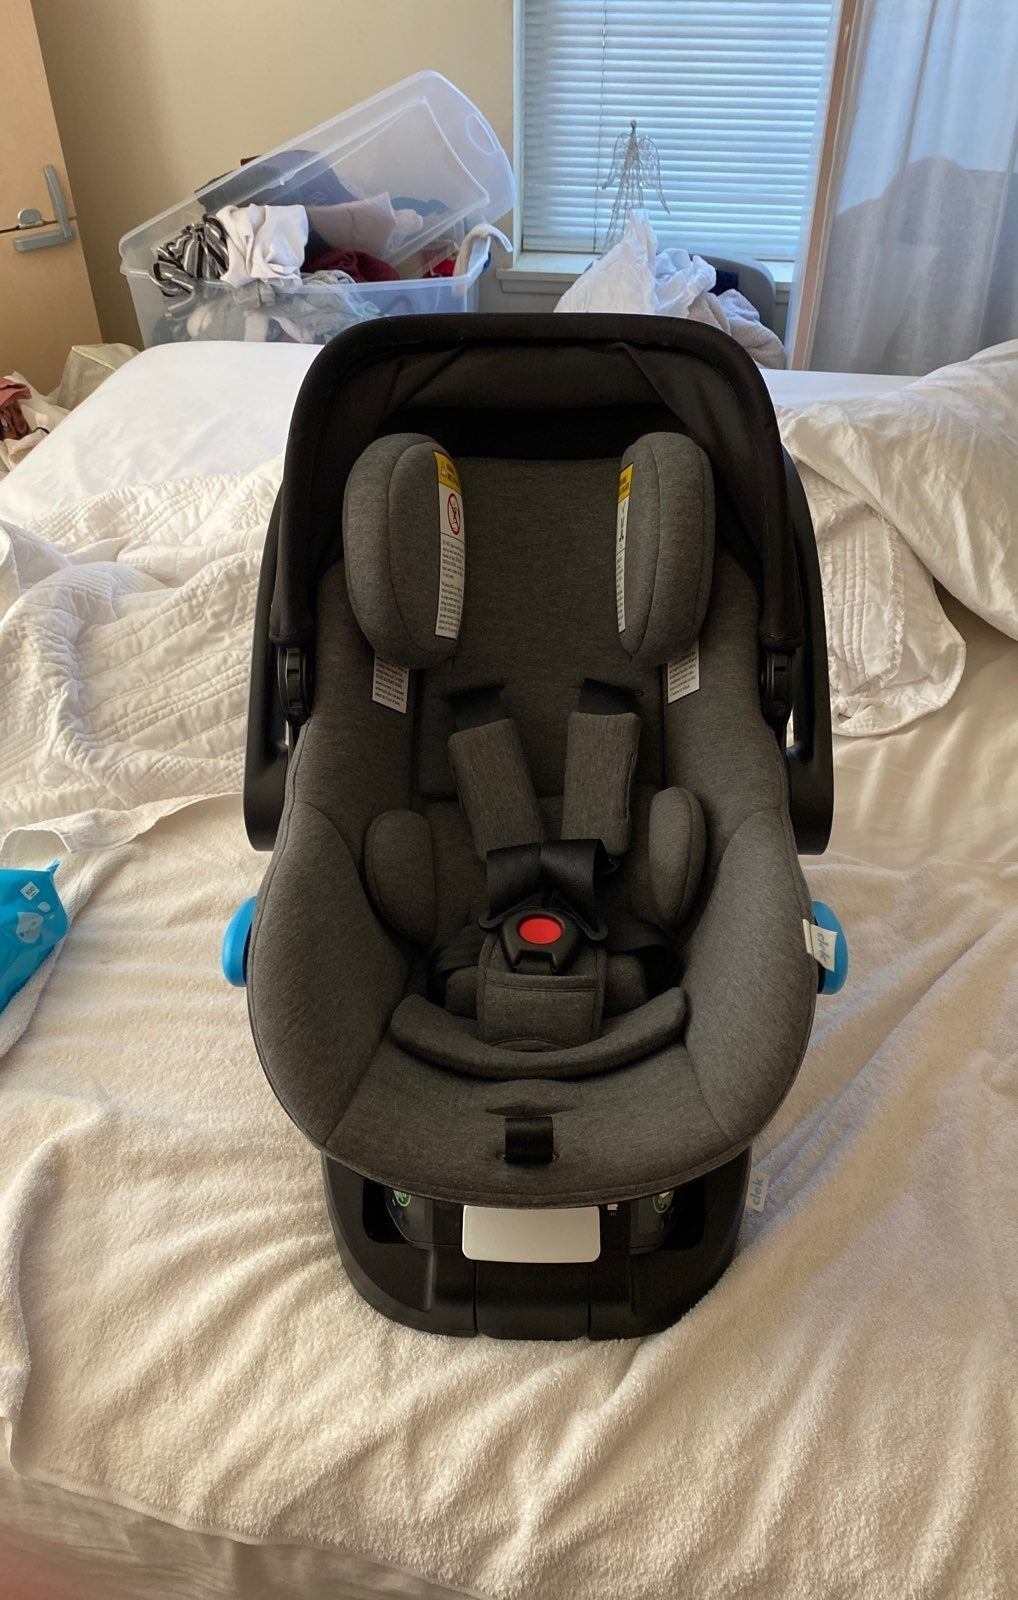 Clek Liing Infant Car Seat in Carbon